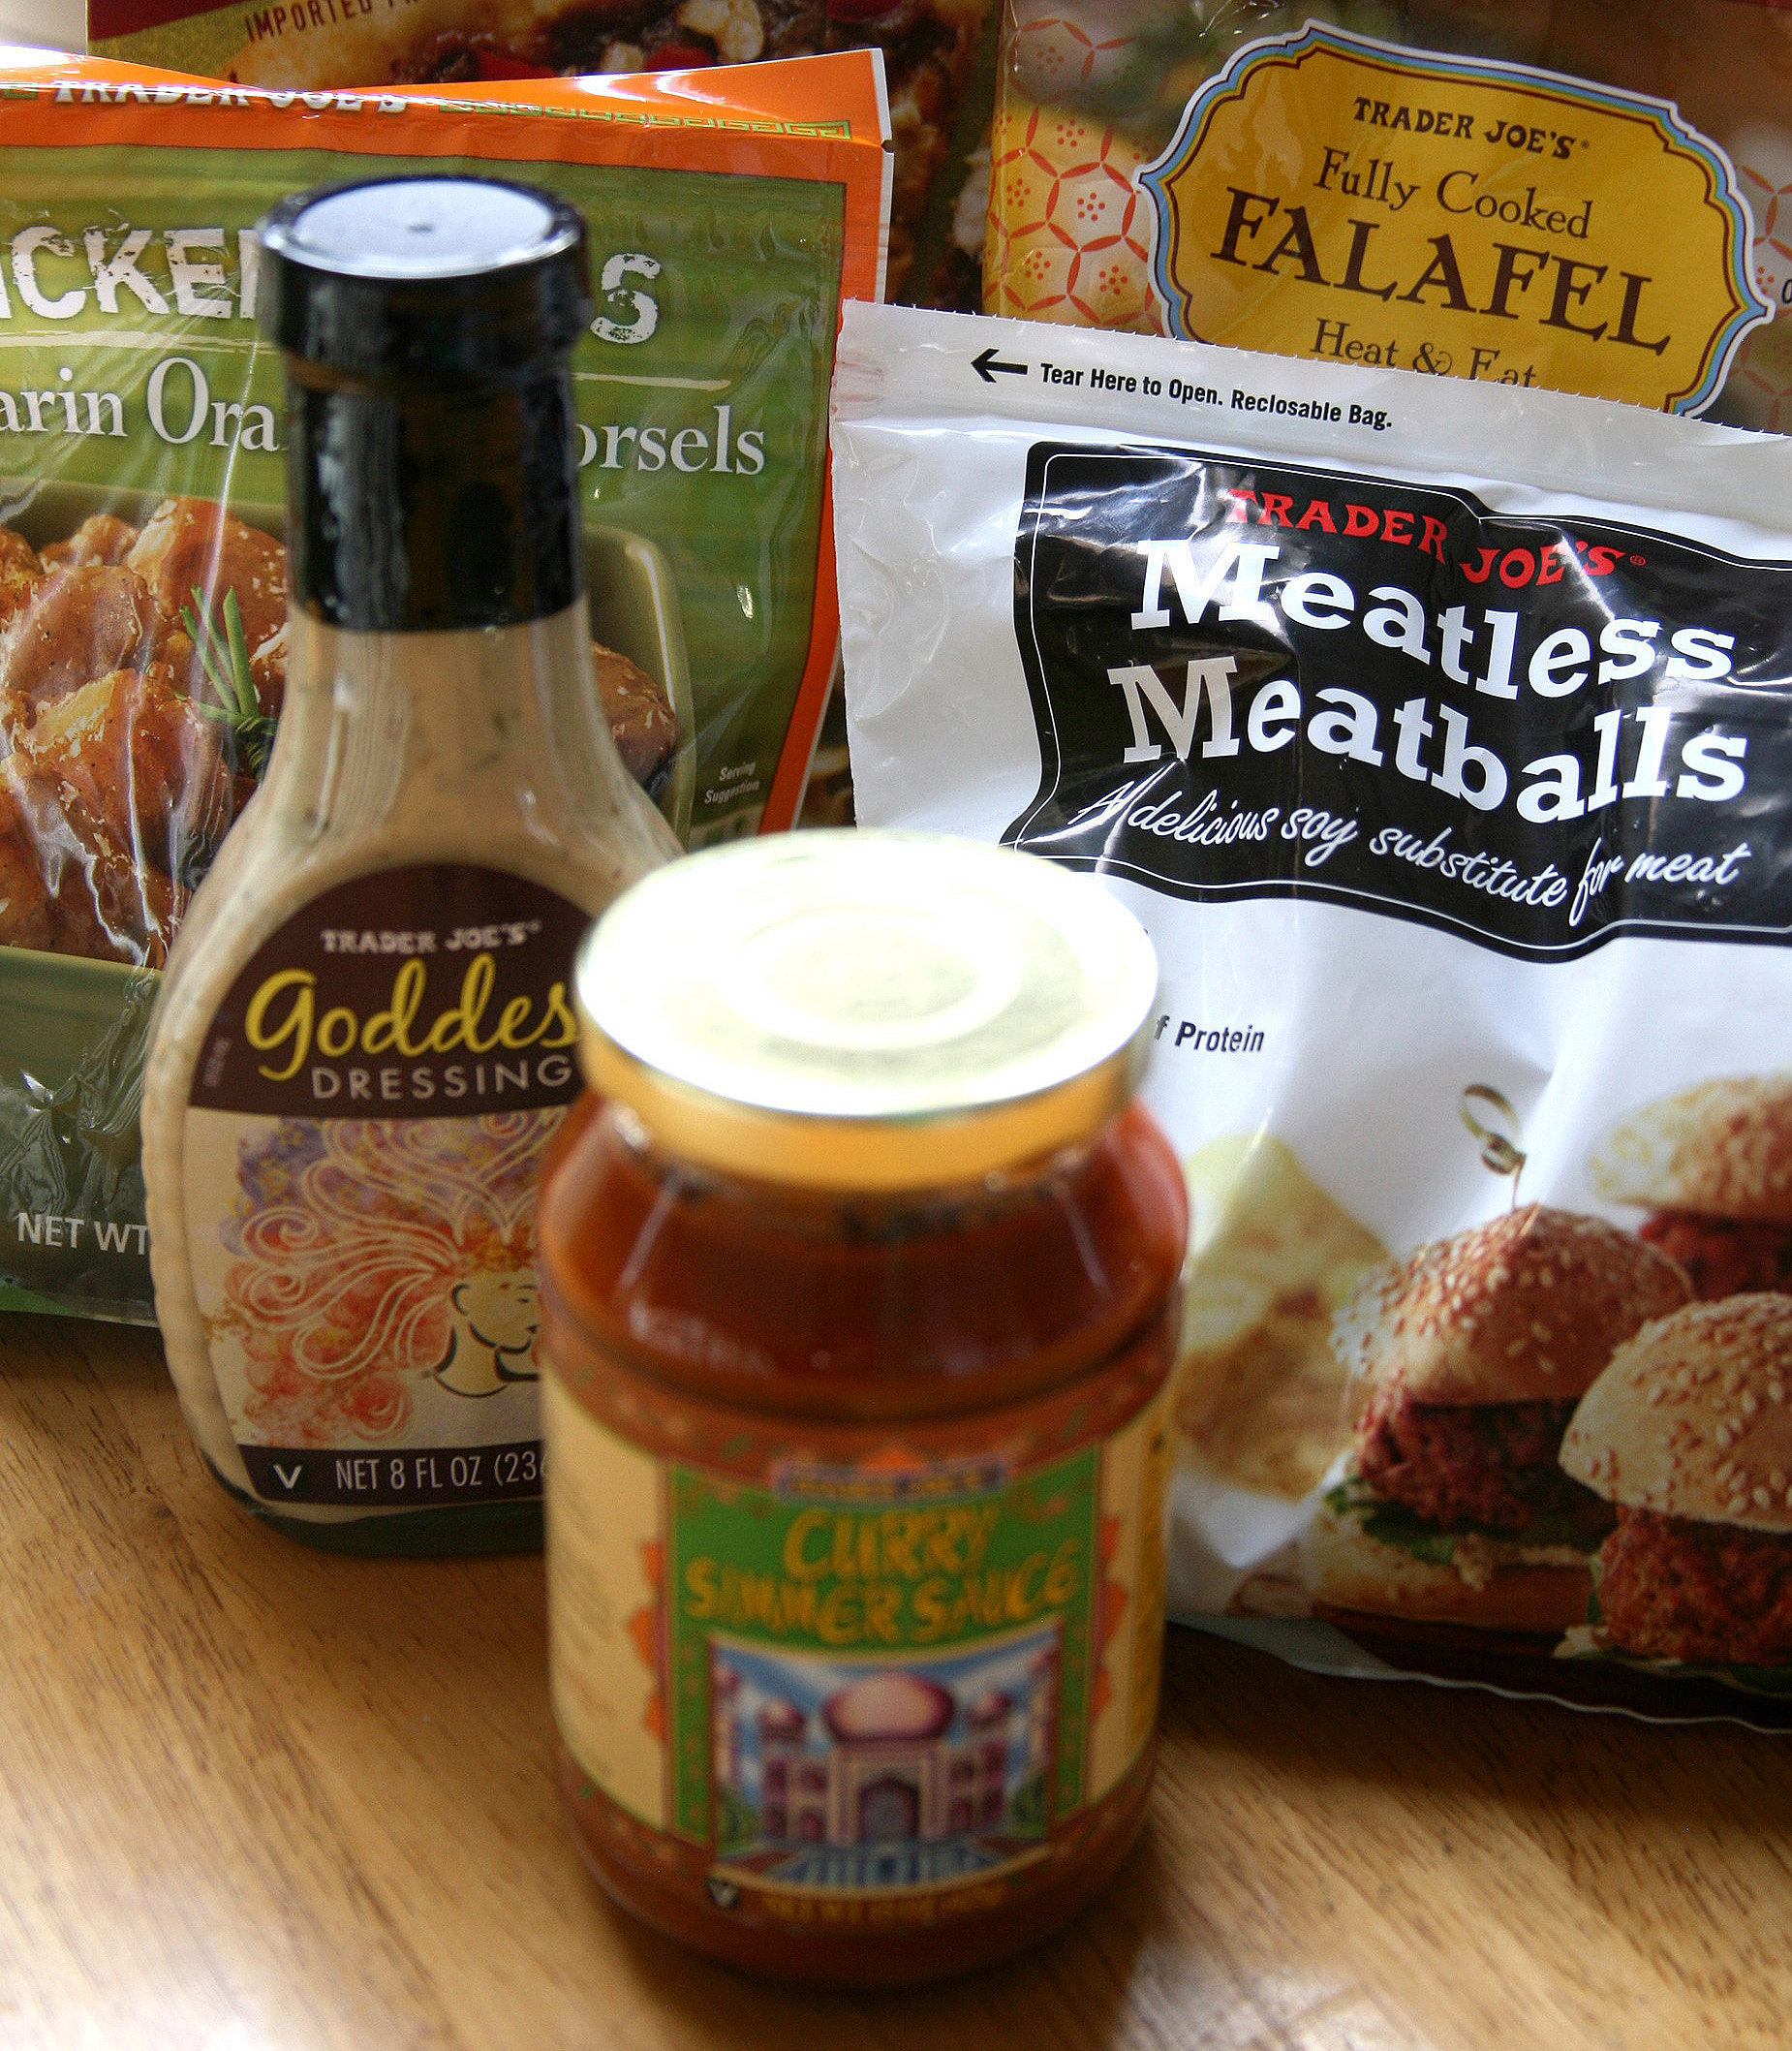 Best vegan options at trader joe's